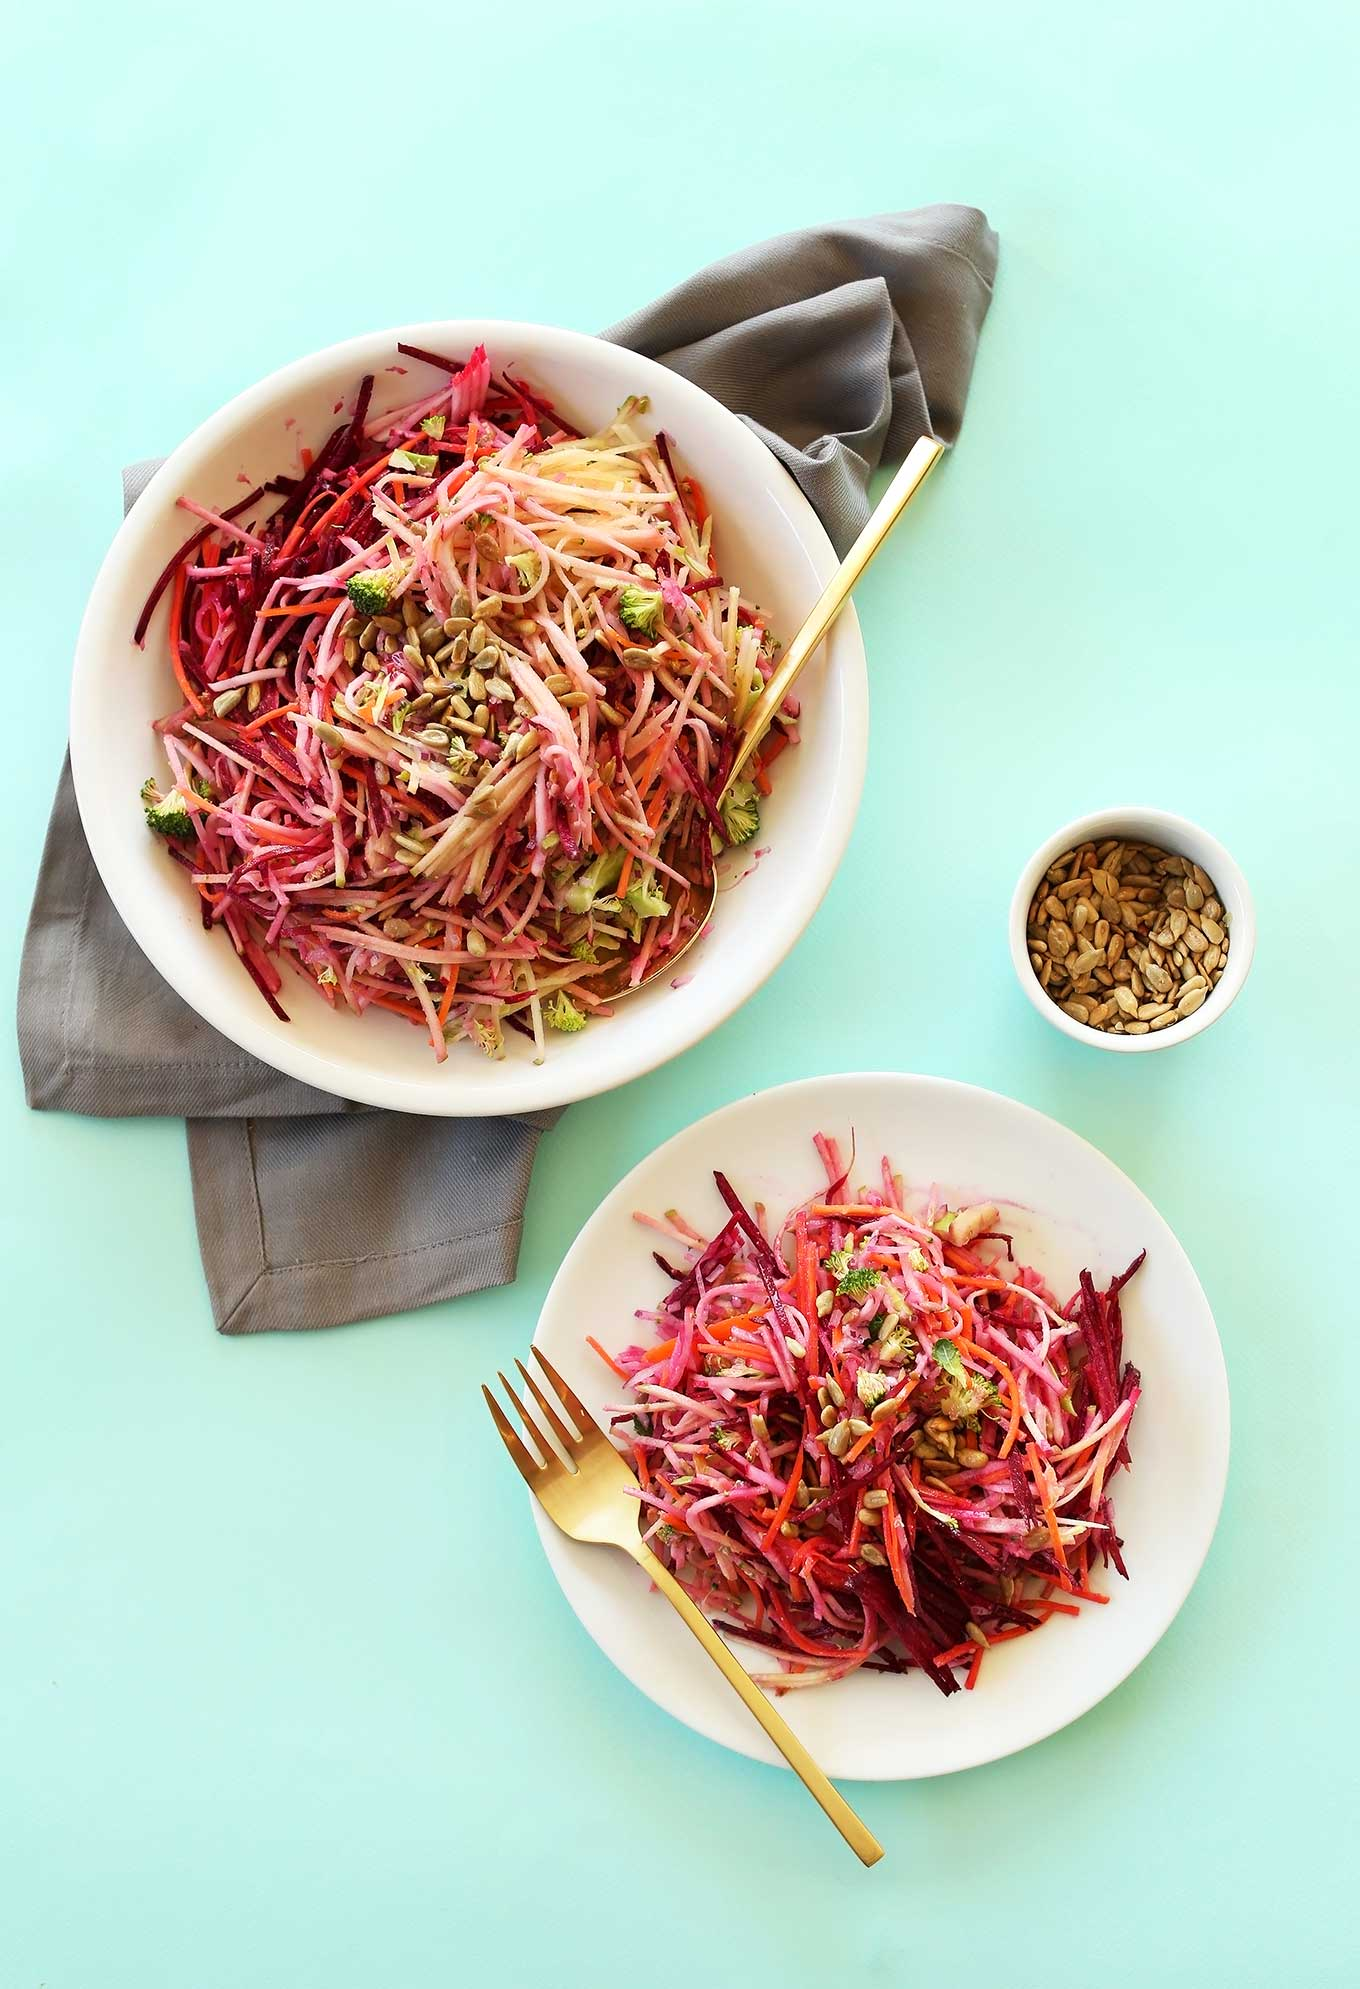 Plate and big bowl of colorful fall slaw with a tangy vegan dressing